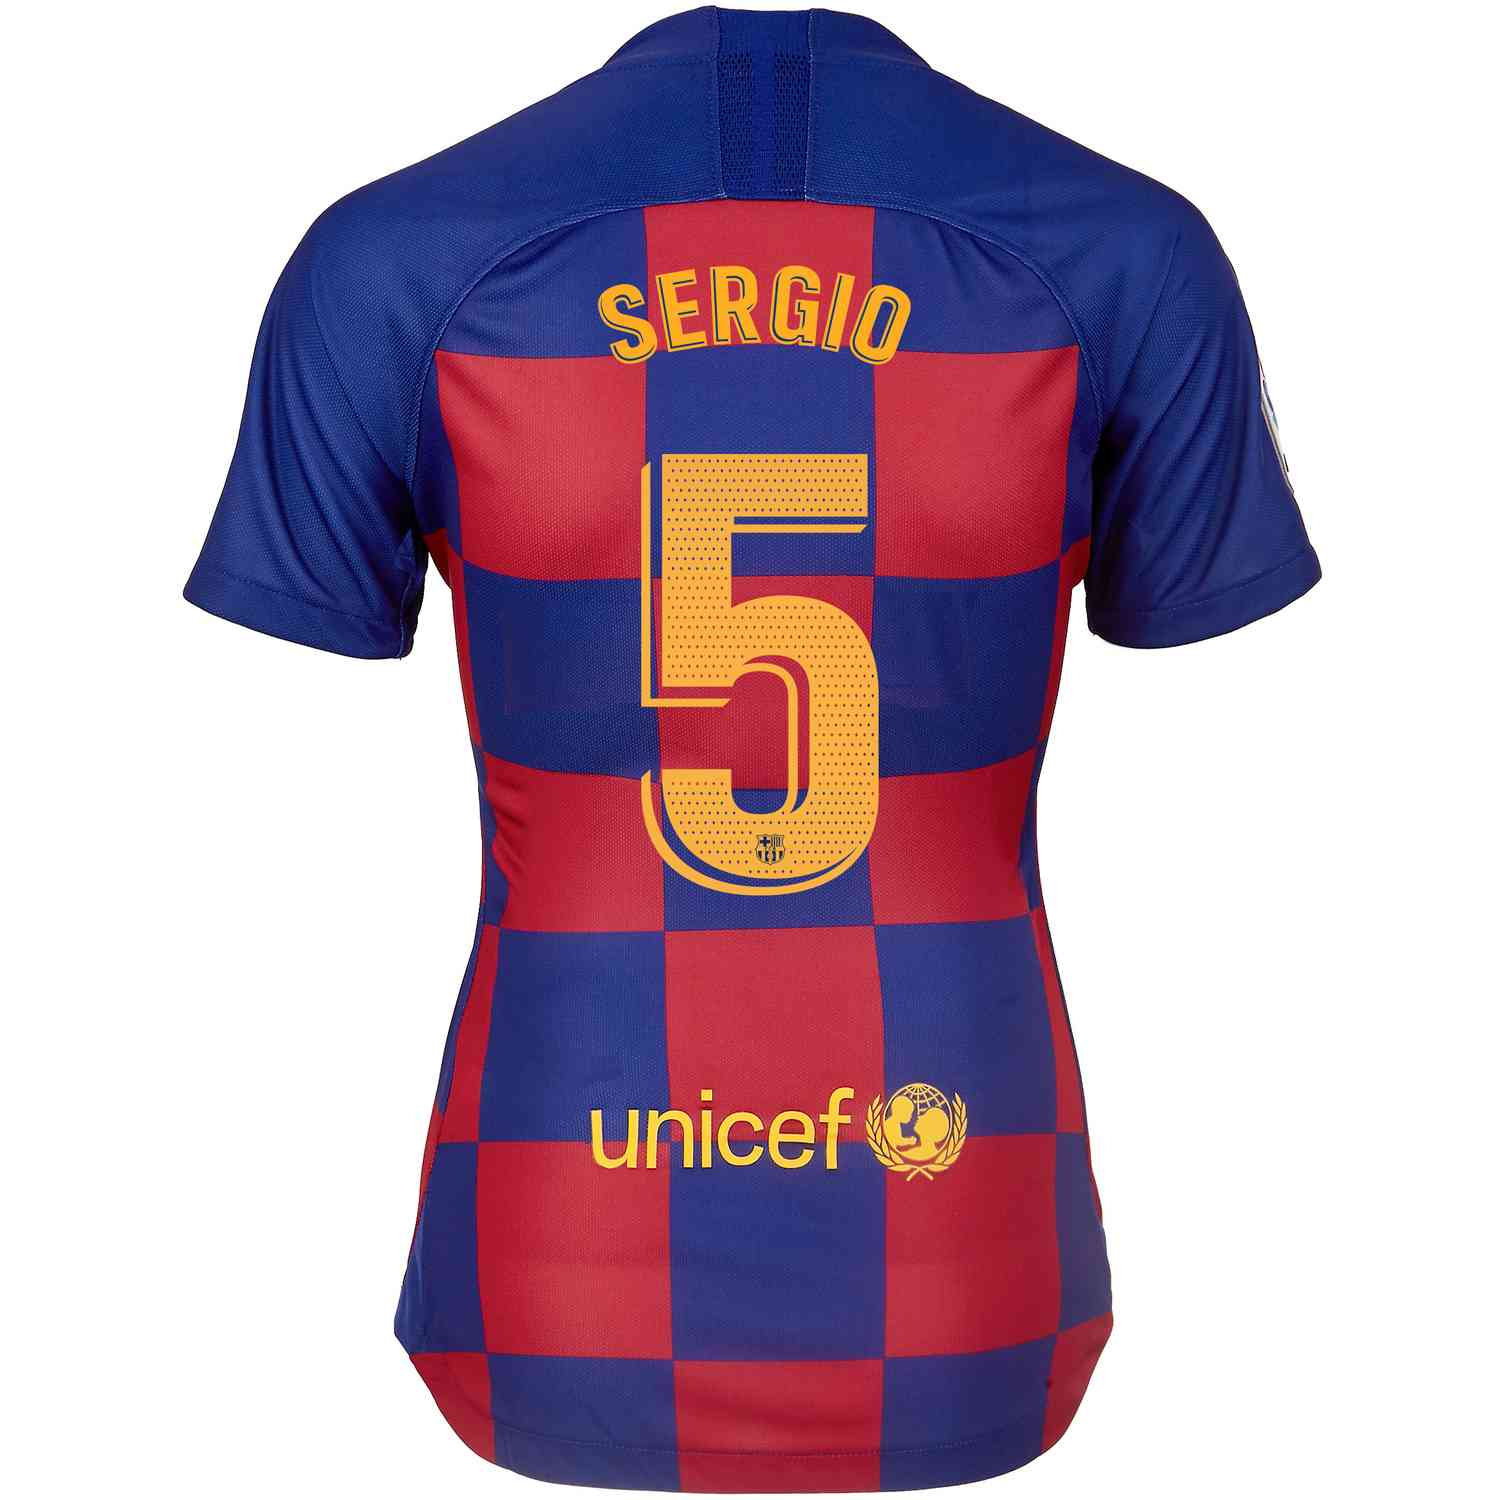 info for fe8be 517cb 2019/20 Womens Nike Sergio Busquets Barcelona Home Jersey ...